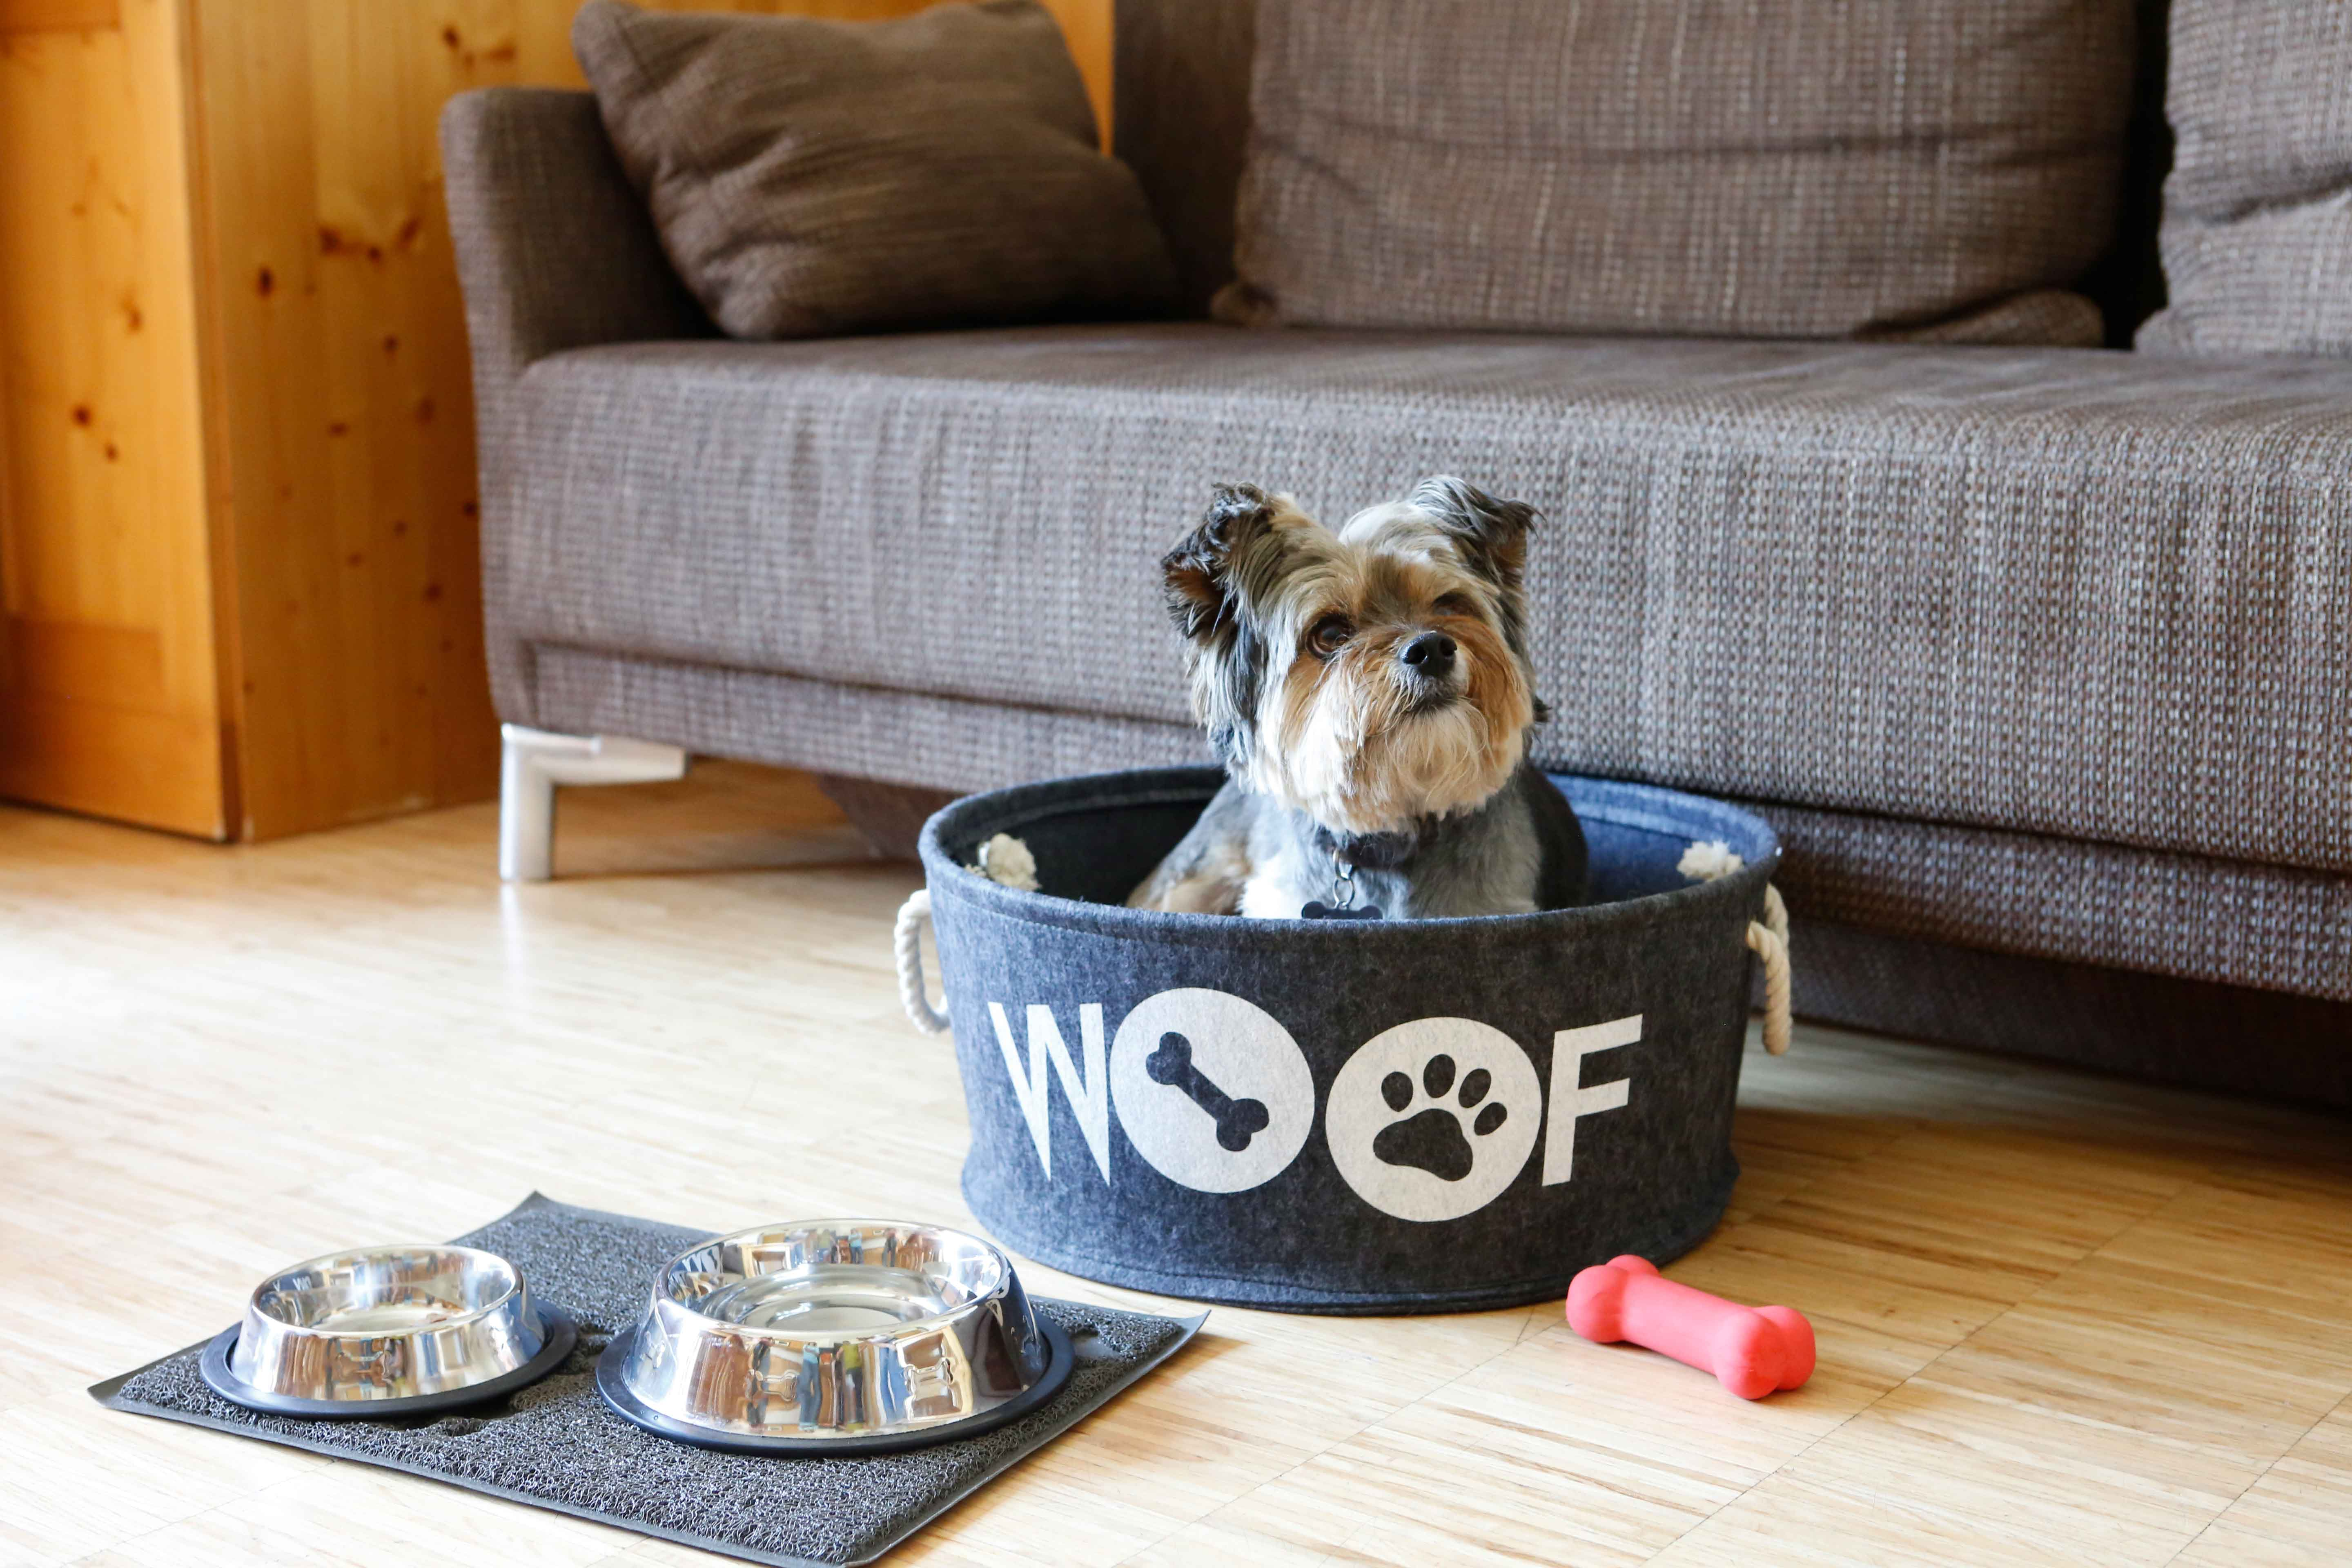 Yay! Off to the family holiday with the dog - Kinderhotel Ramsi